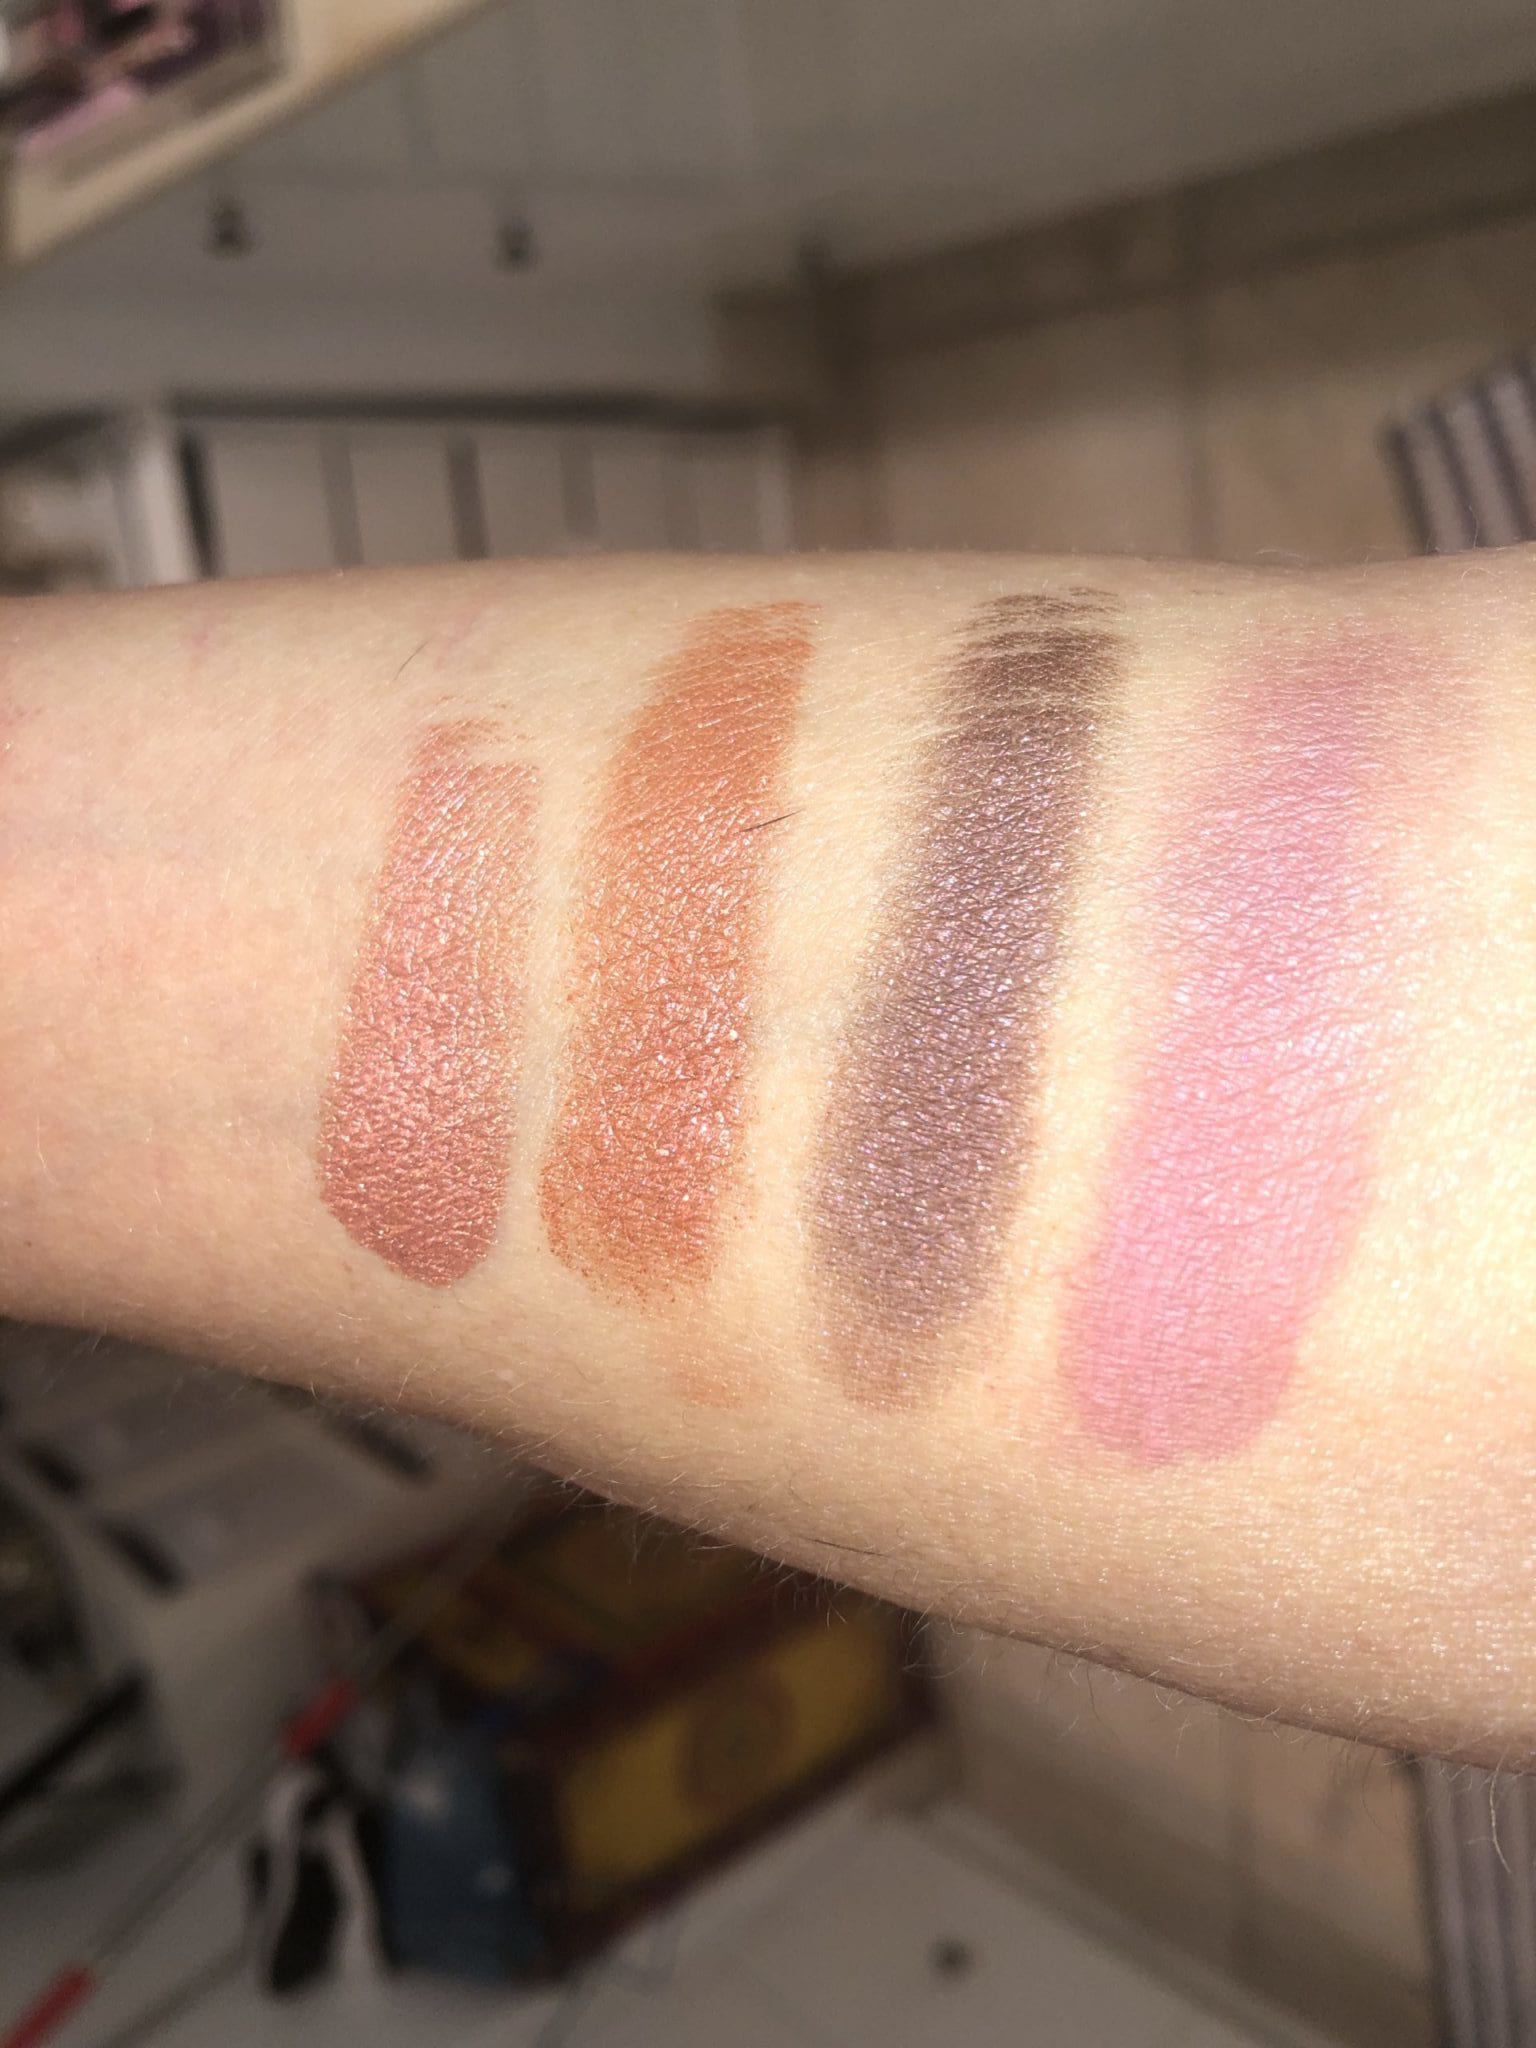 ORGASM X QUAD EYESHADOW SWATCHES L TO R: PINK RUST SHIMMER, S[ARLING AMBER, BLACK W RED SHIMMER, DUSTY. ROSE MATTE